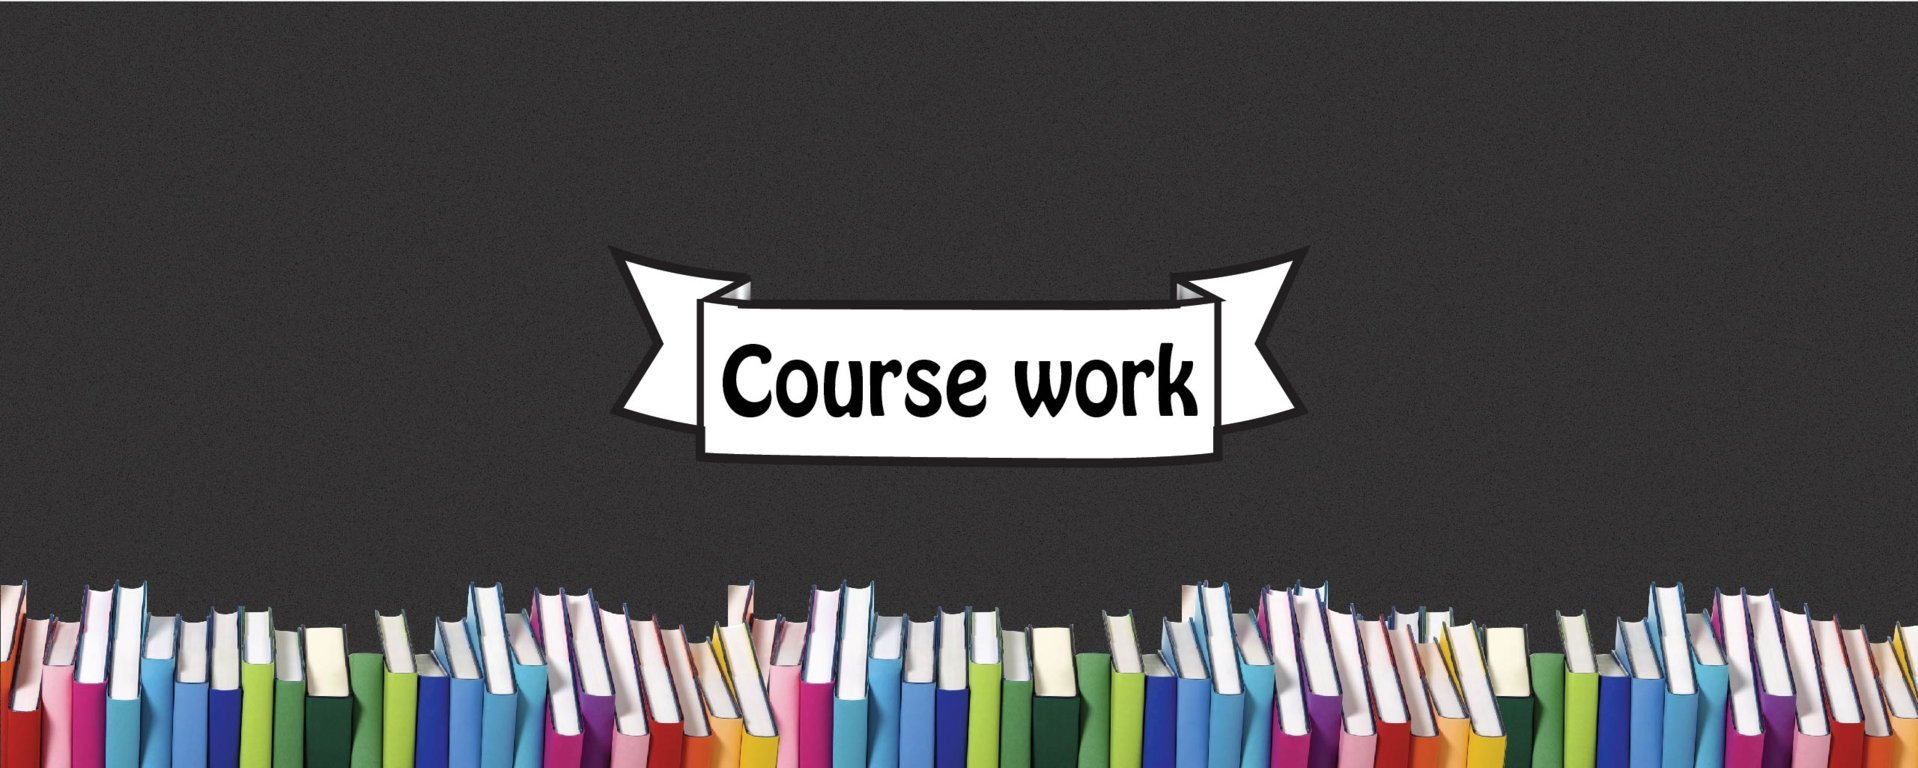 Coursework help uk services